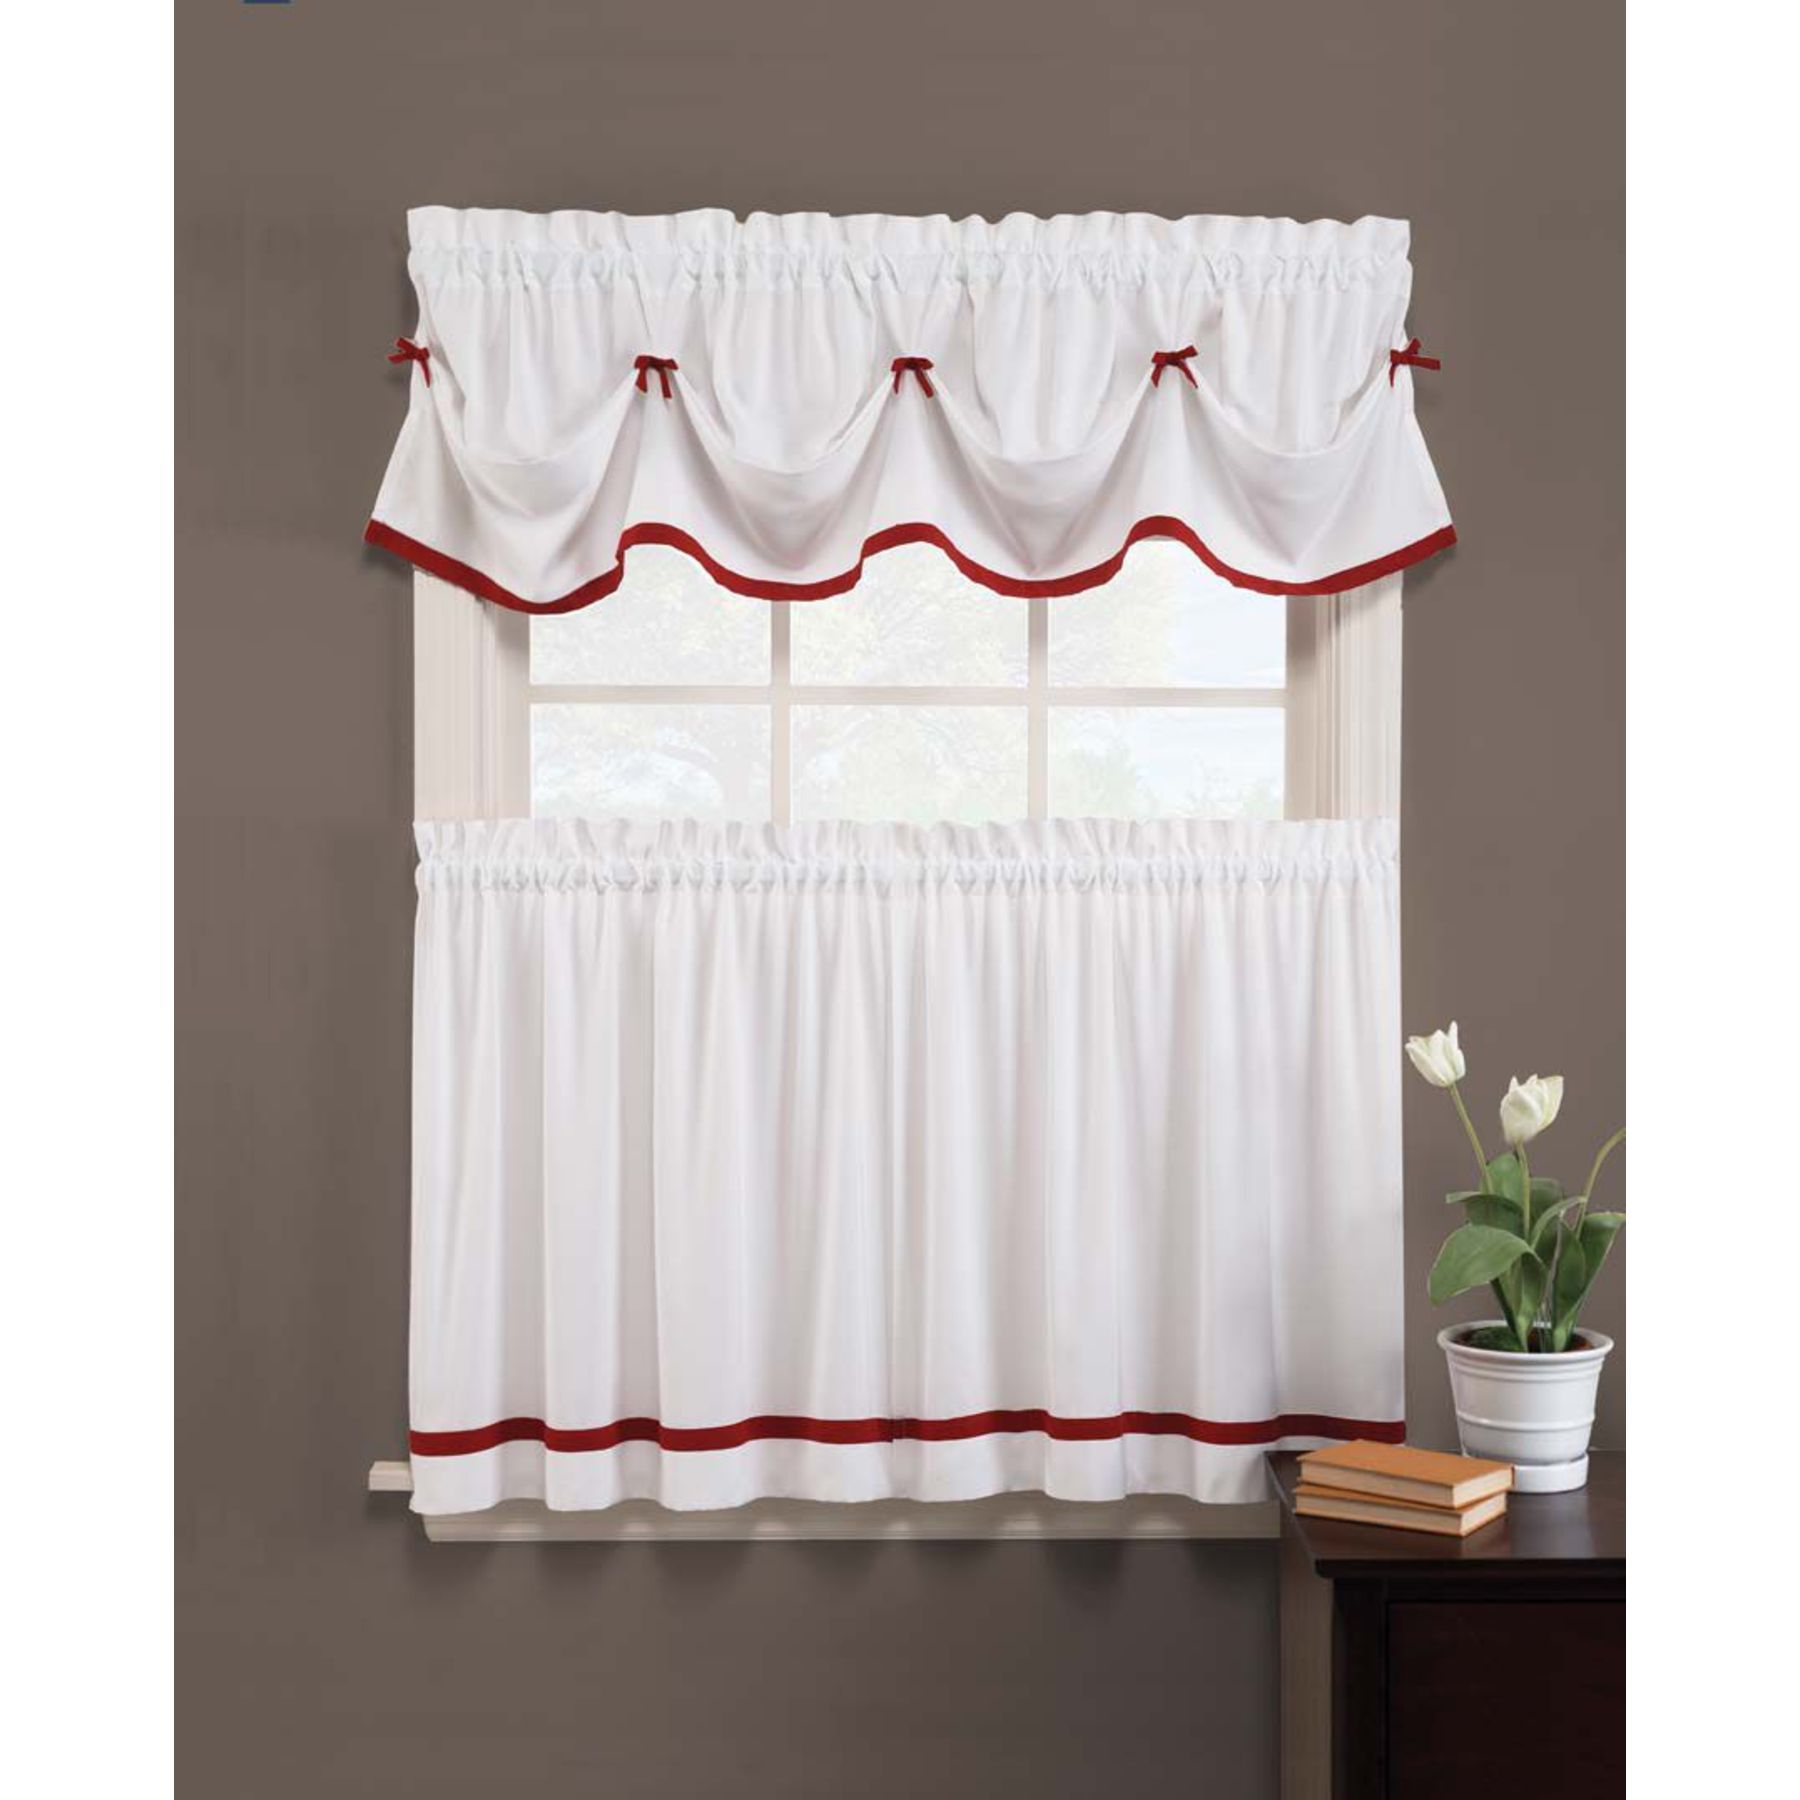 Pinkathy Graham Grant On Curtains Drapes And Blinds Diy Magnificent White Kitchen Curtains Design Inspiration